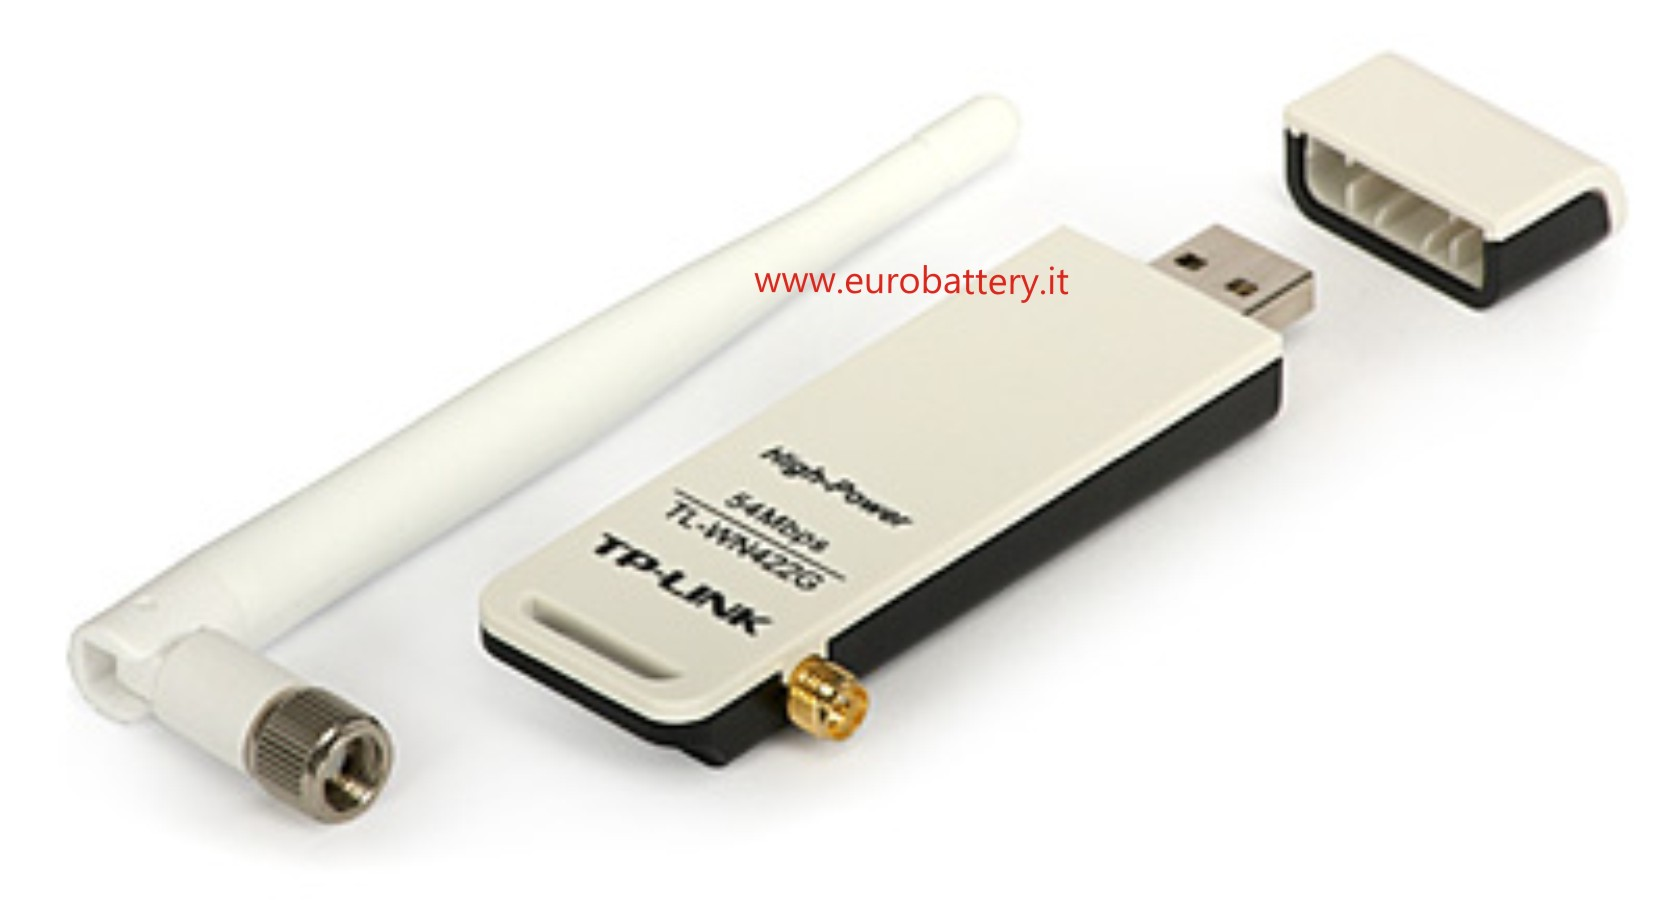 CHIAVETTA WIRELESS USB 2.0 54 Mbps TP-LINK TL-WN422G